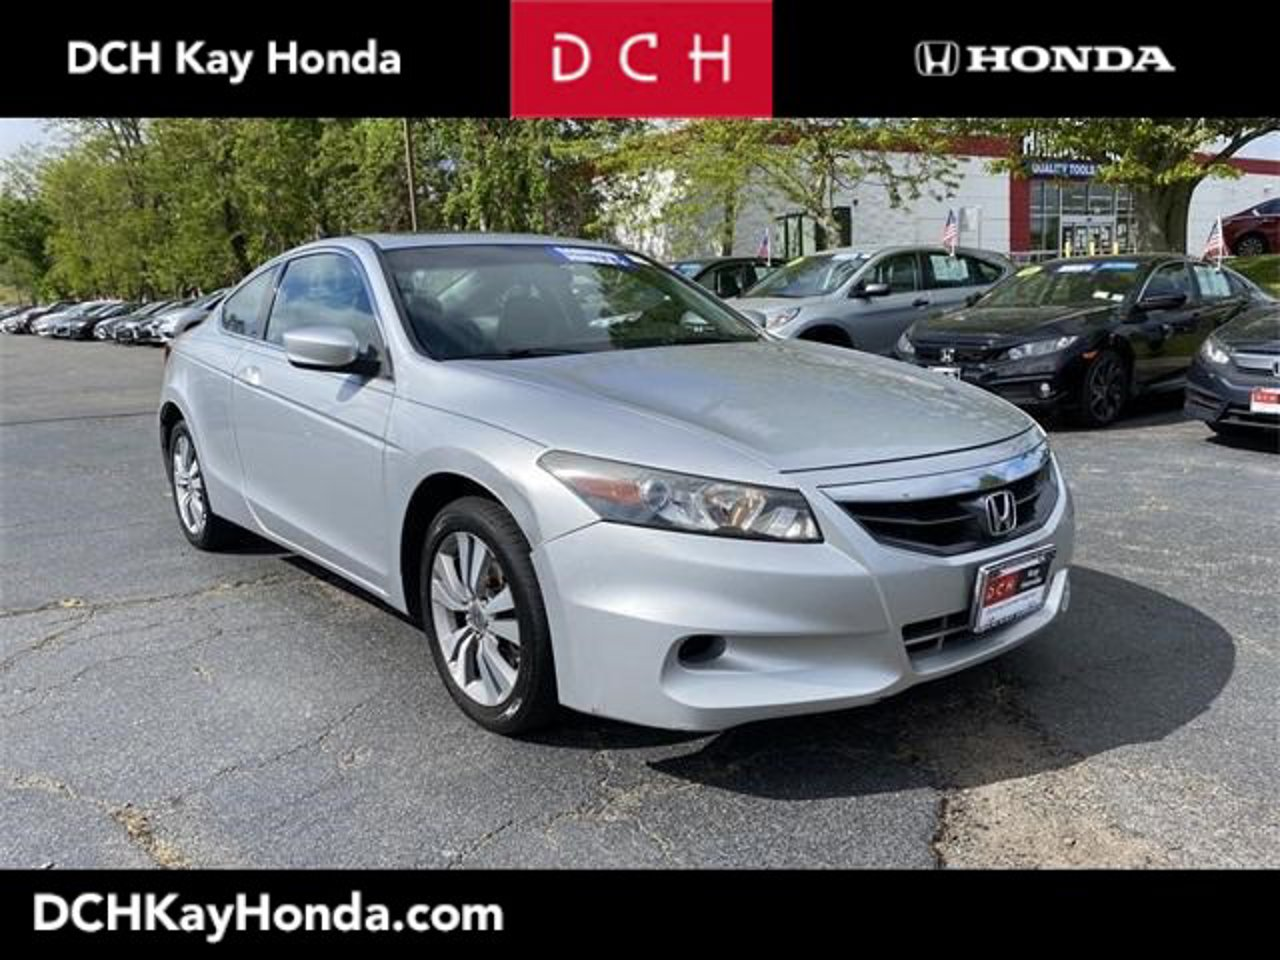 Used 2012 Honda Accord Coupe in Eatontown, NJ